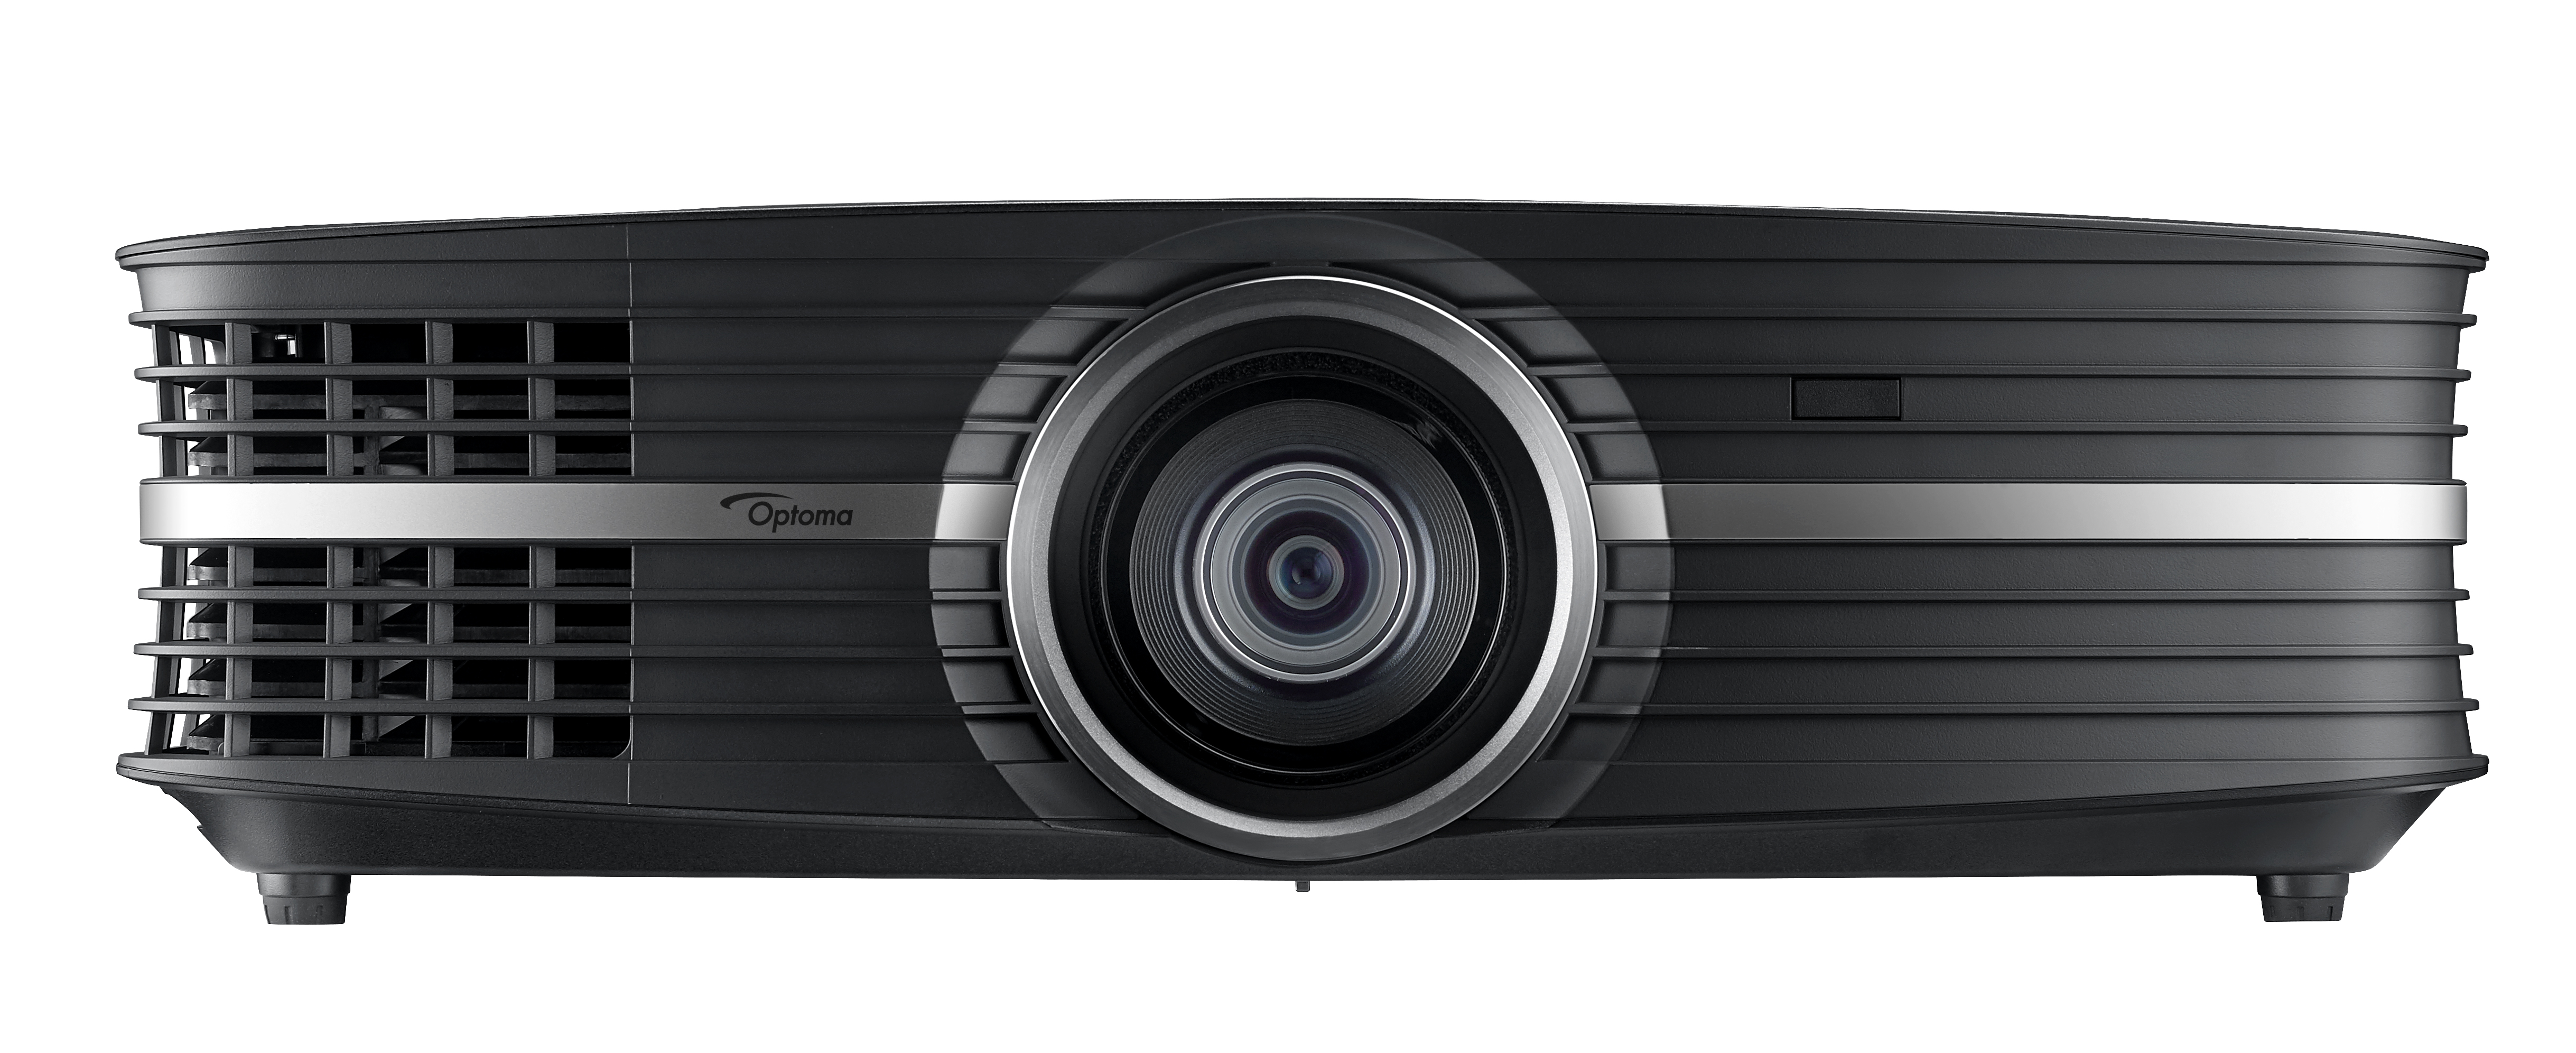 Optoma UHD65 2200lm 4K DLP Home Theater Projector, Refurbished